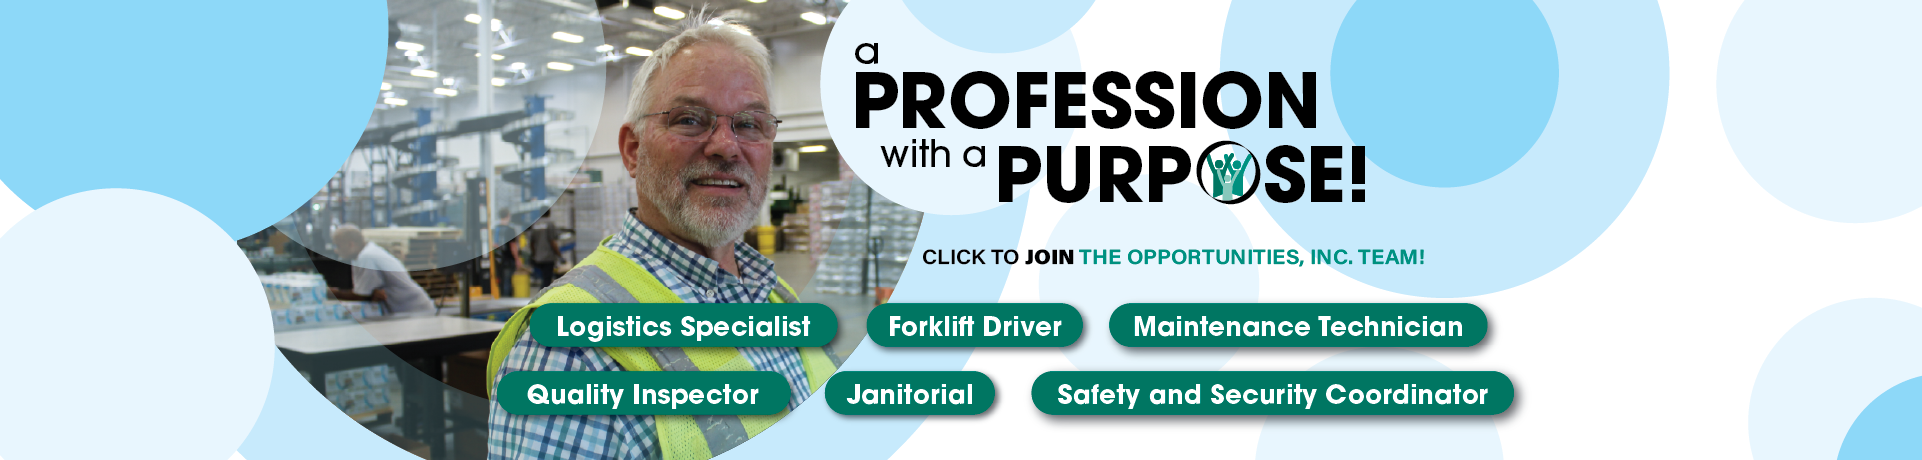 A_Profession_with_a_Purpose_Banner_v9